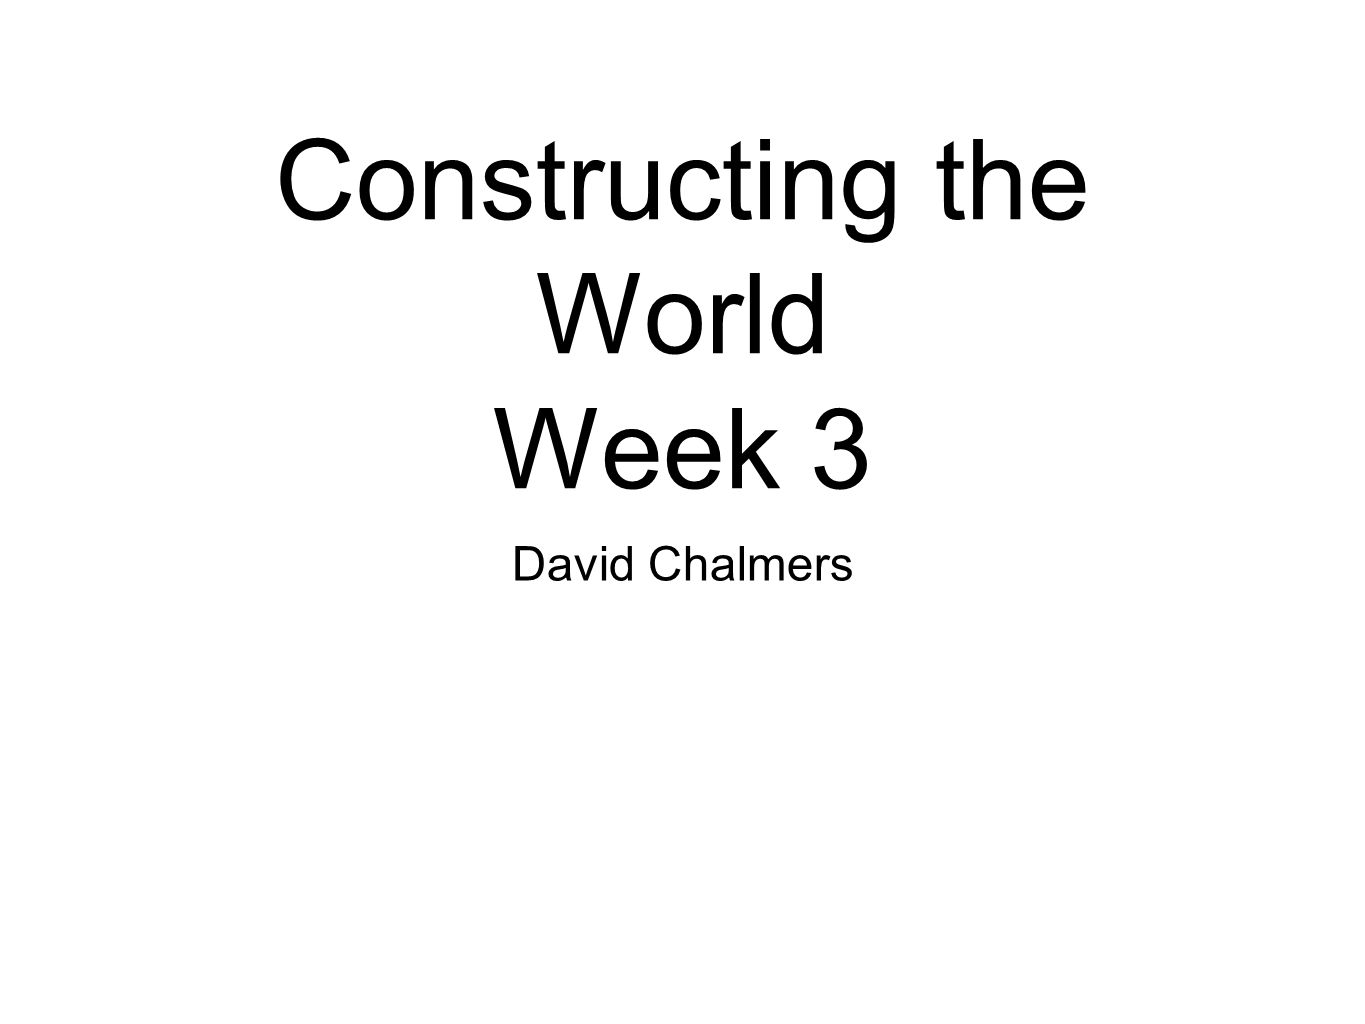 Constructing the World Week 3 David Chalmers